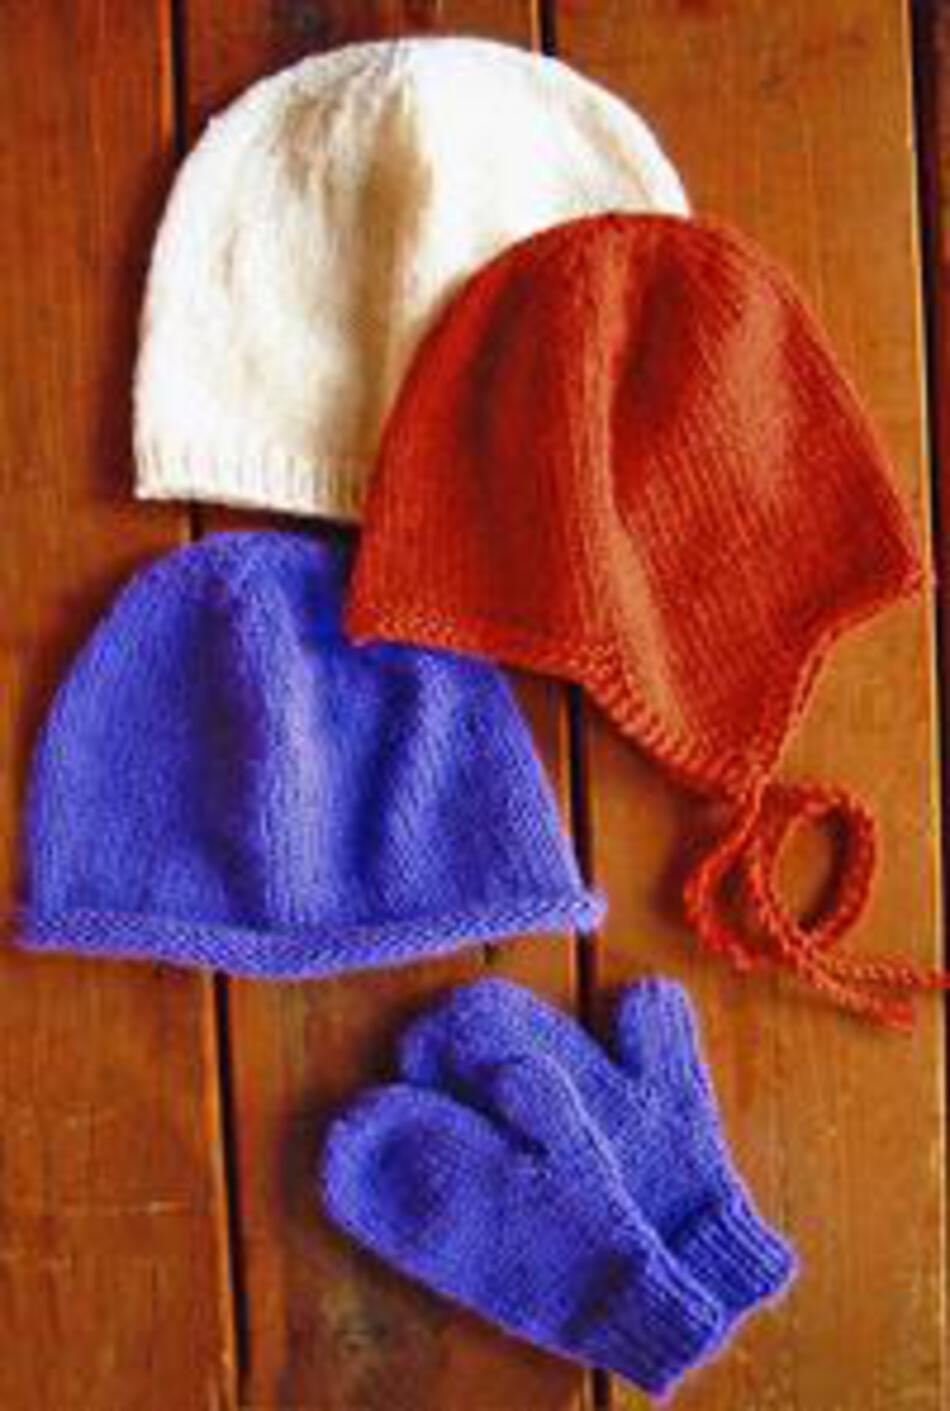 Different Knitting Stitches For Hats : Basic Hat and Mitten Set for Children by Knitting Pure and Simple, Knitting P...